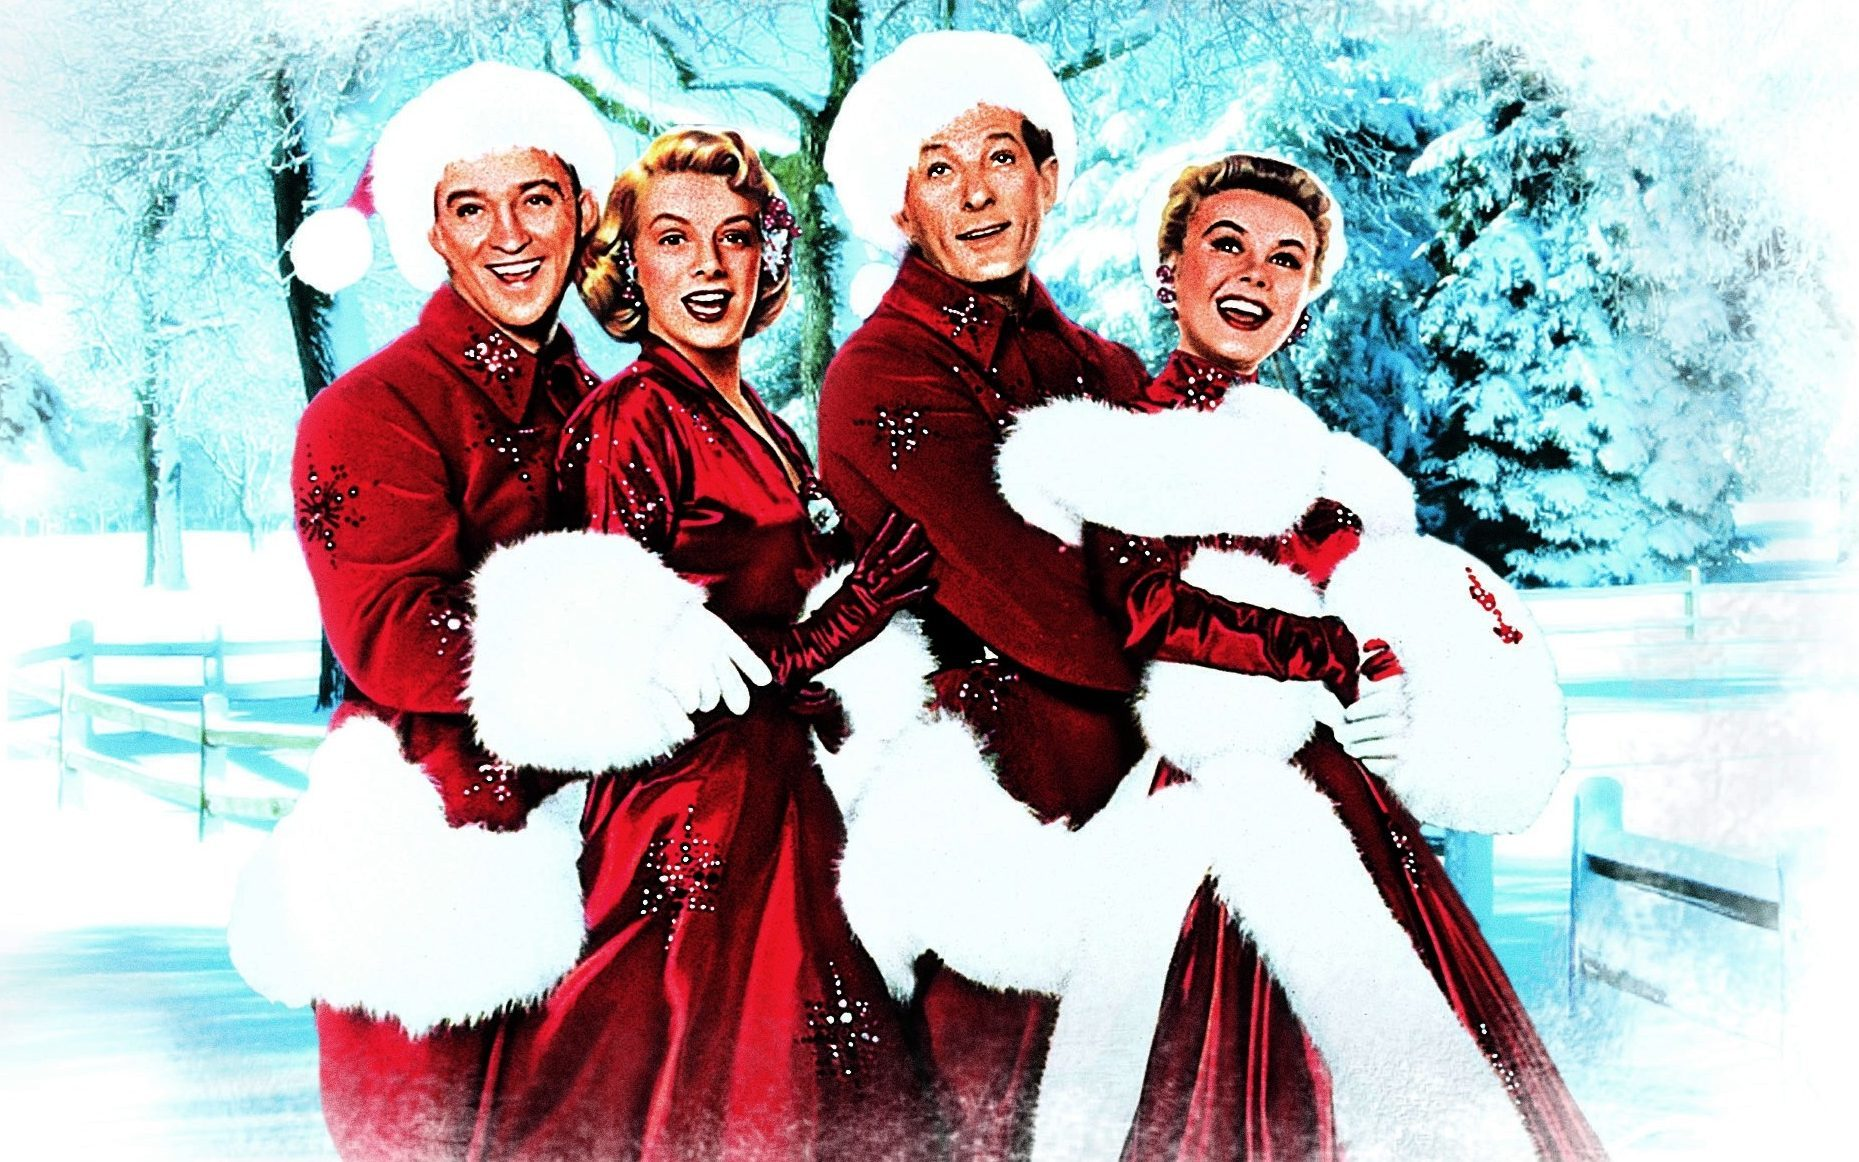 Bing Crosby Christmas.Bing Crosby Wasn T Sure If White Christmas Would Ever Be A